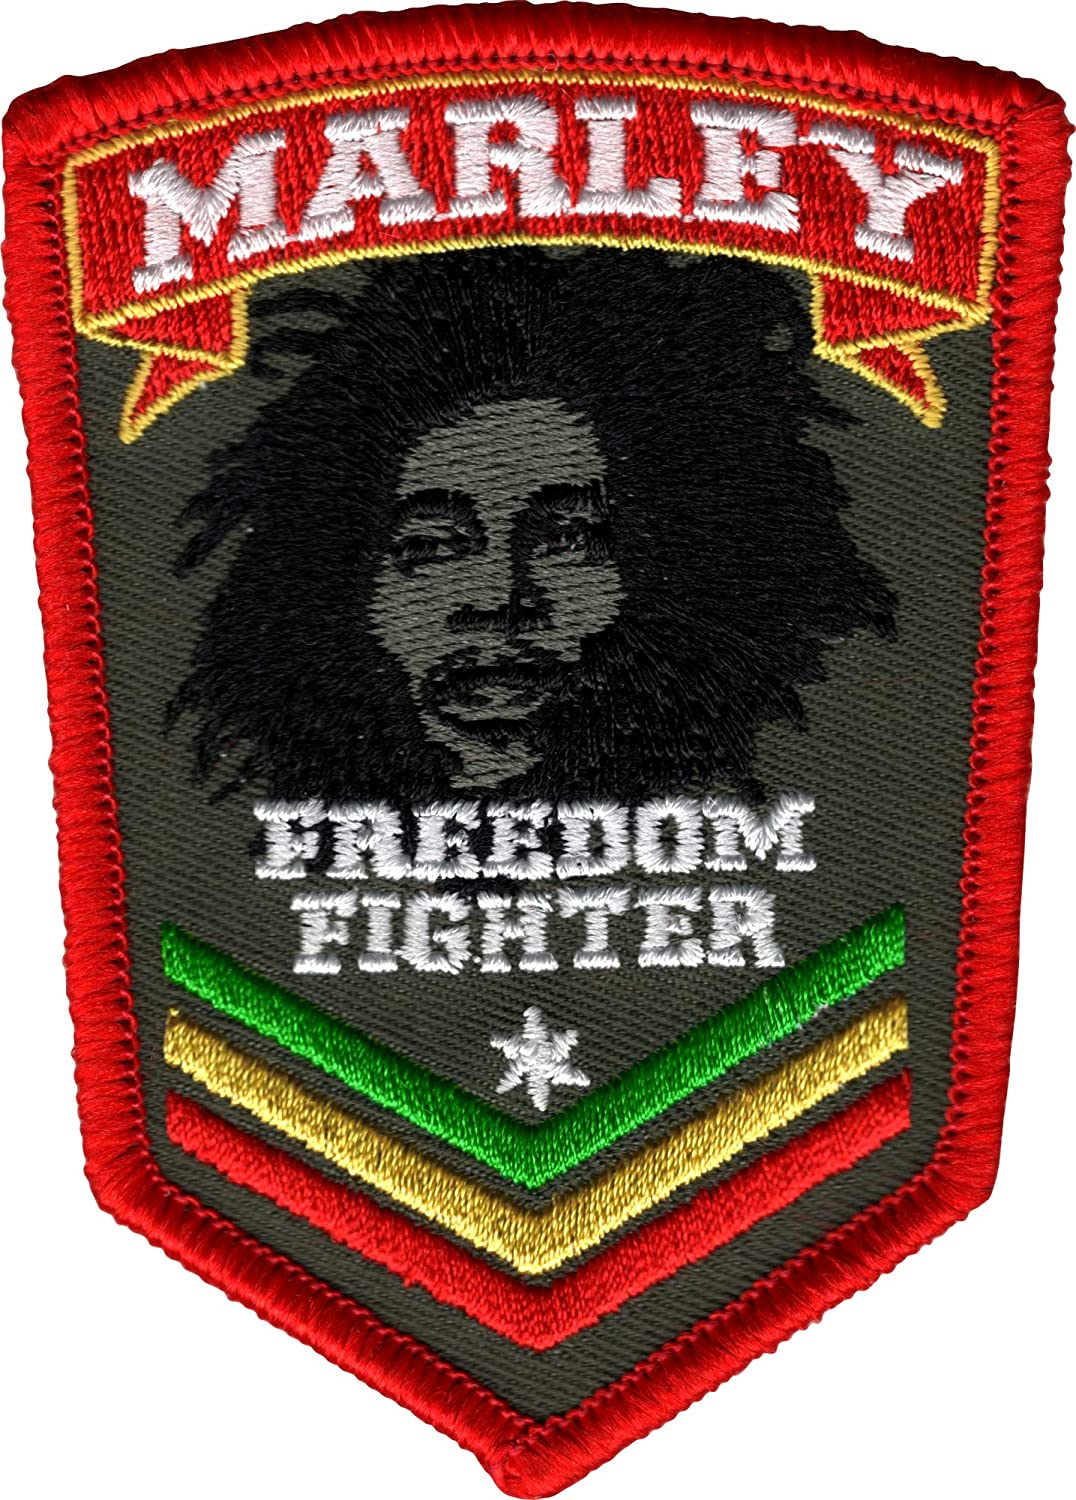 BOB MARLEY RASTA REGGAE JAH Embroidered Iron Sew On Cloth Patch Badge  APPLIQUE